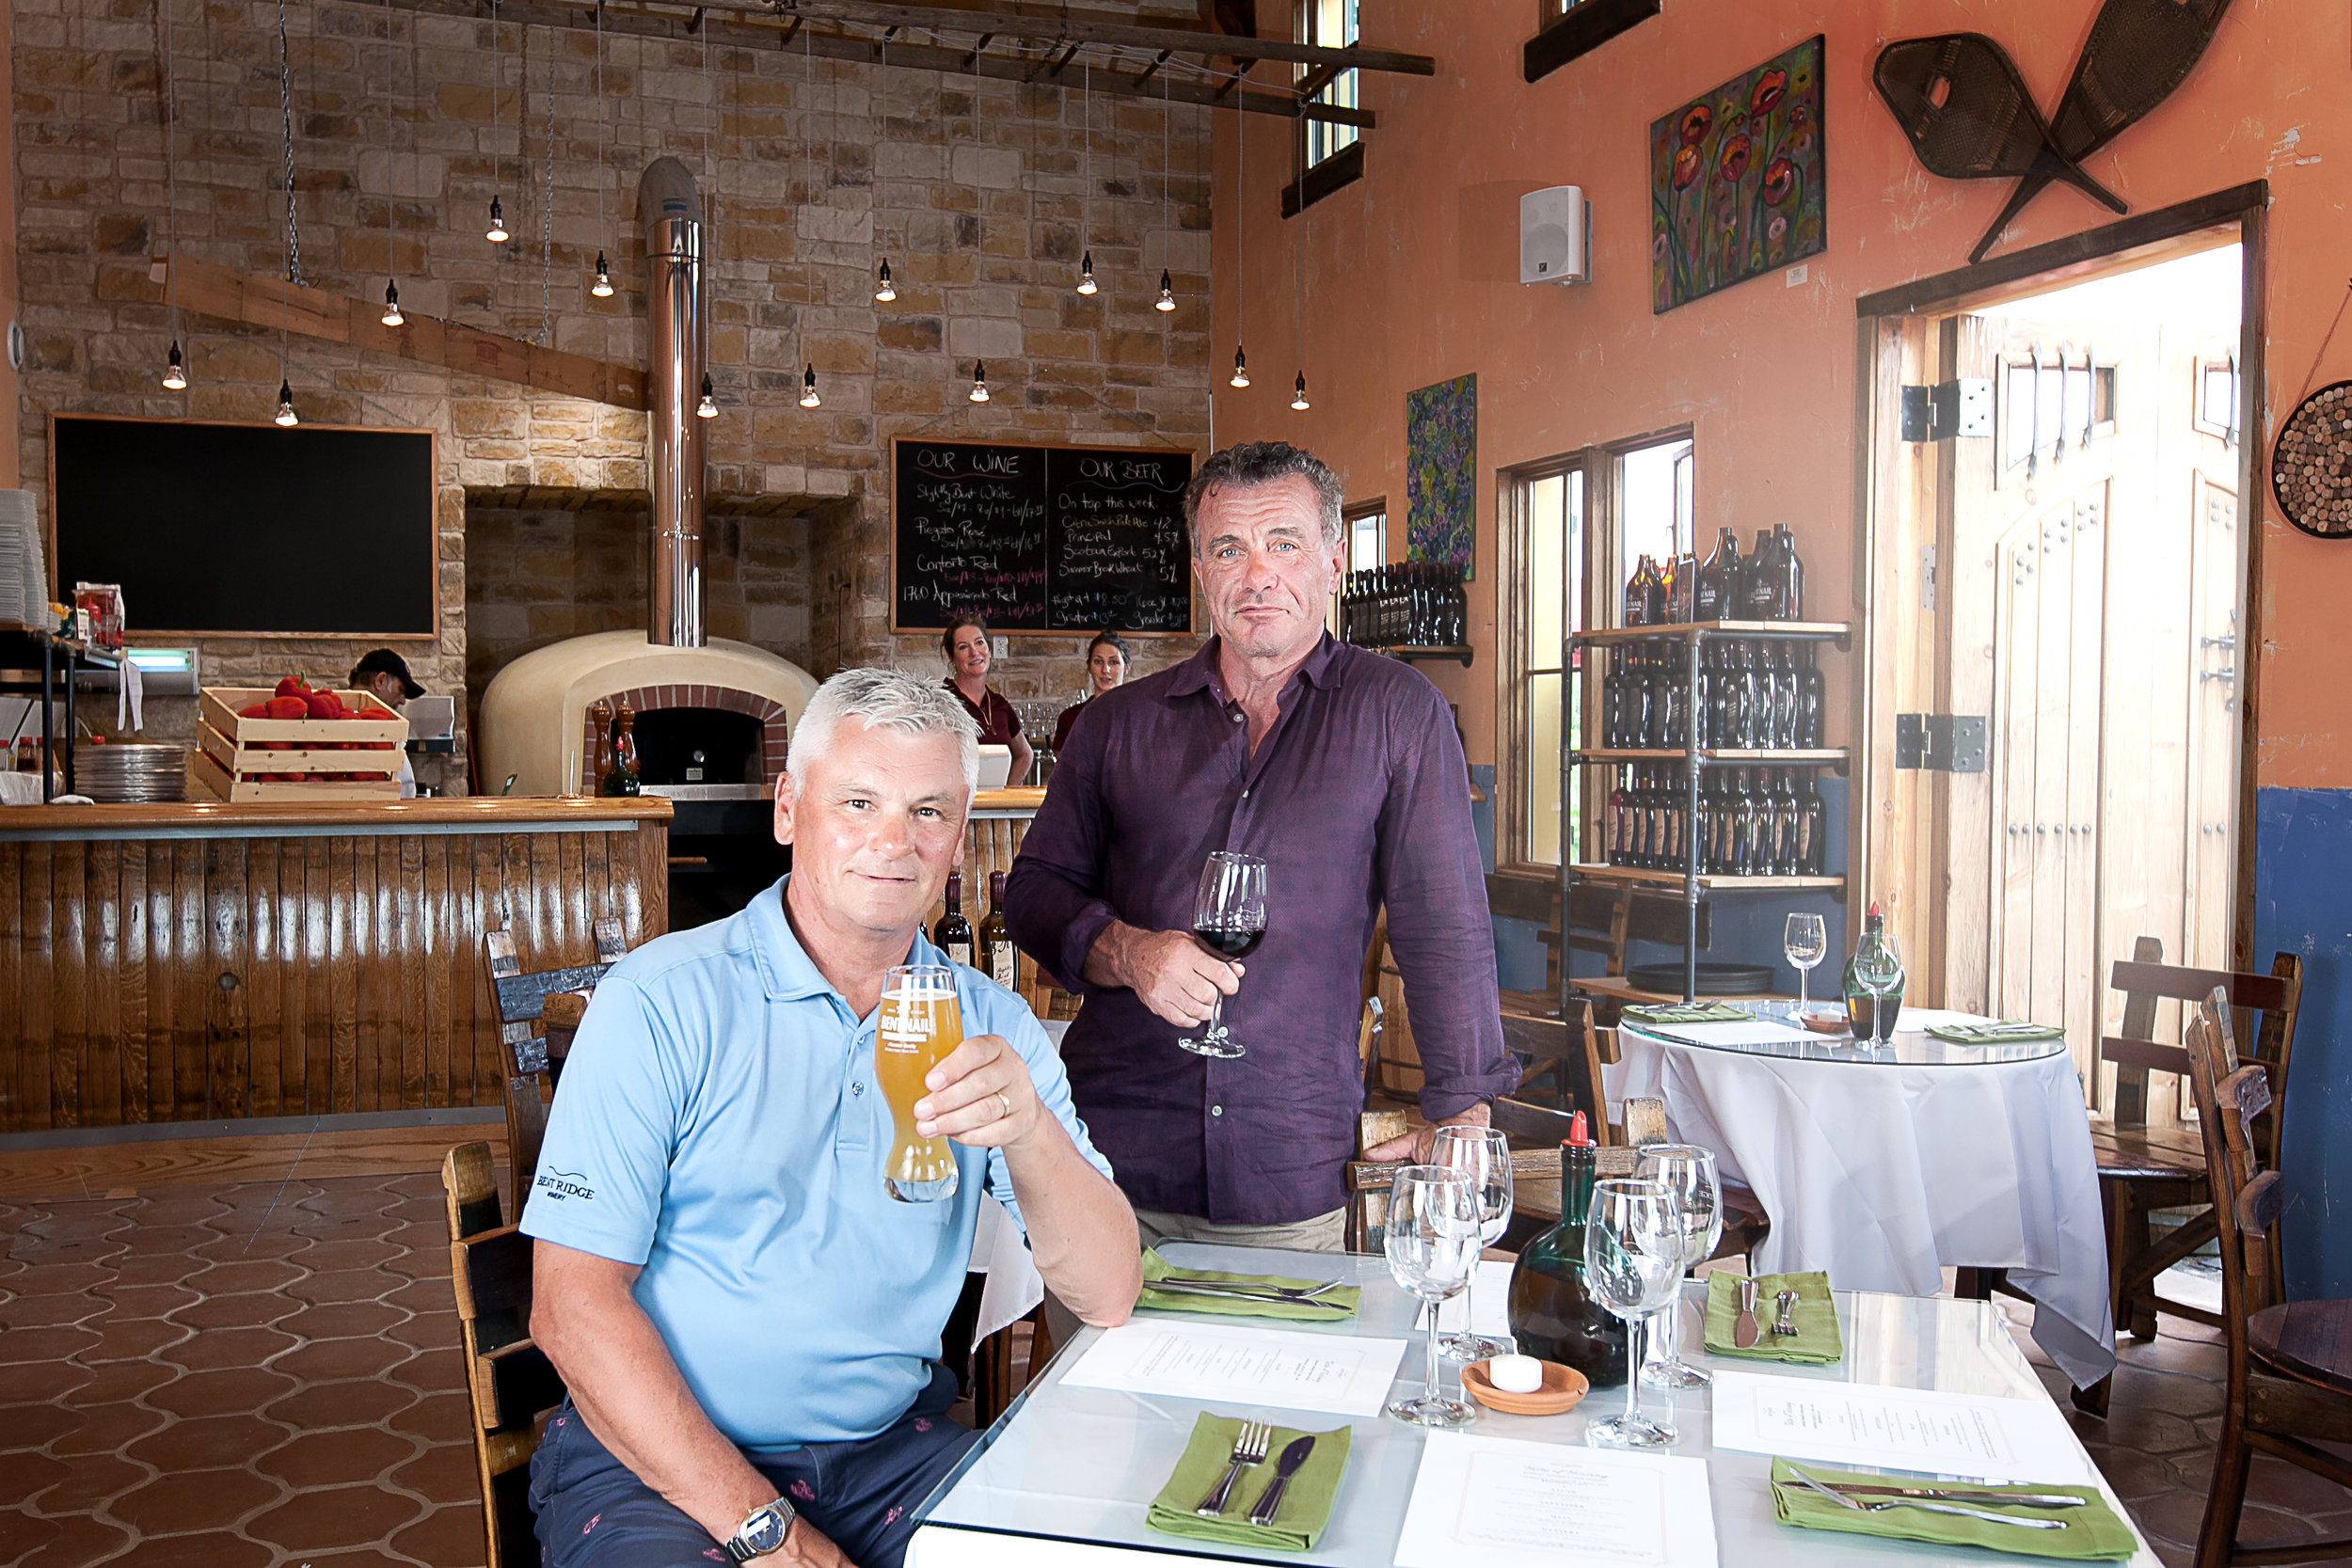 Steven and Glen Dodge, brothers who started Bent Ridge Vineyard and Winery that began commercial operations in July of this year.